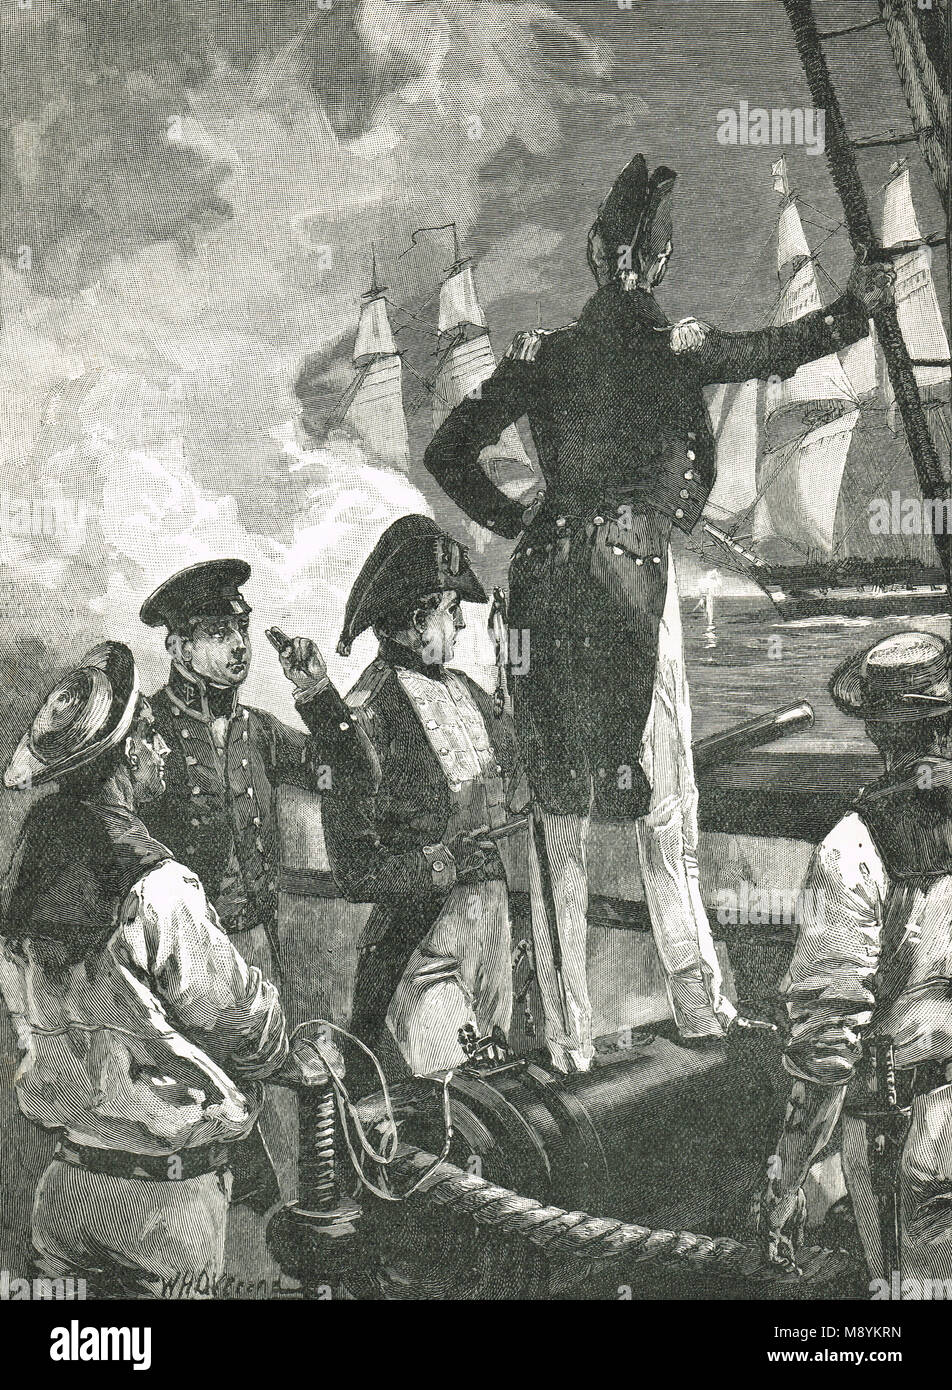 Captain William Walpole intercepting the ships of the Duke of Saldanha, 16 January 1829,  during the Liberal Wars - Stock Image